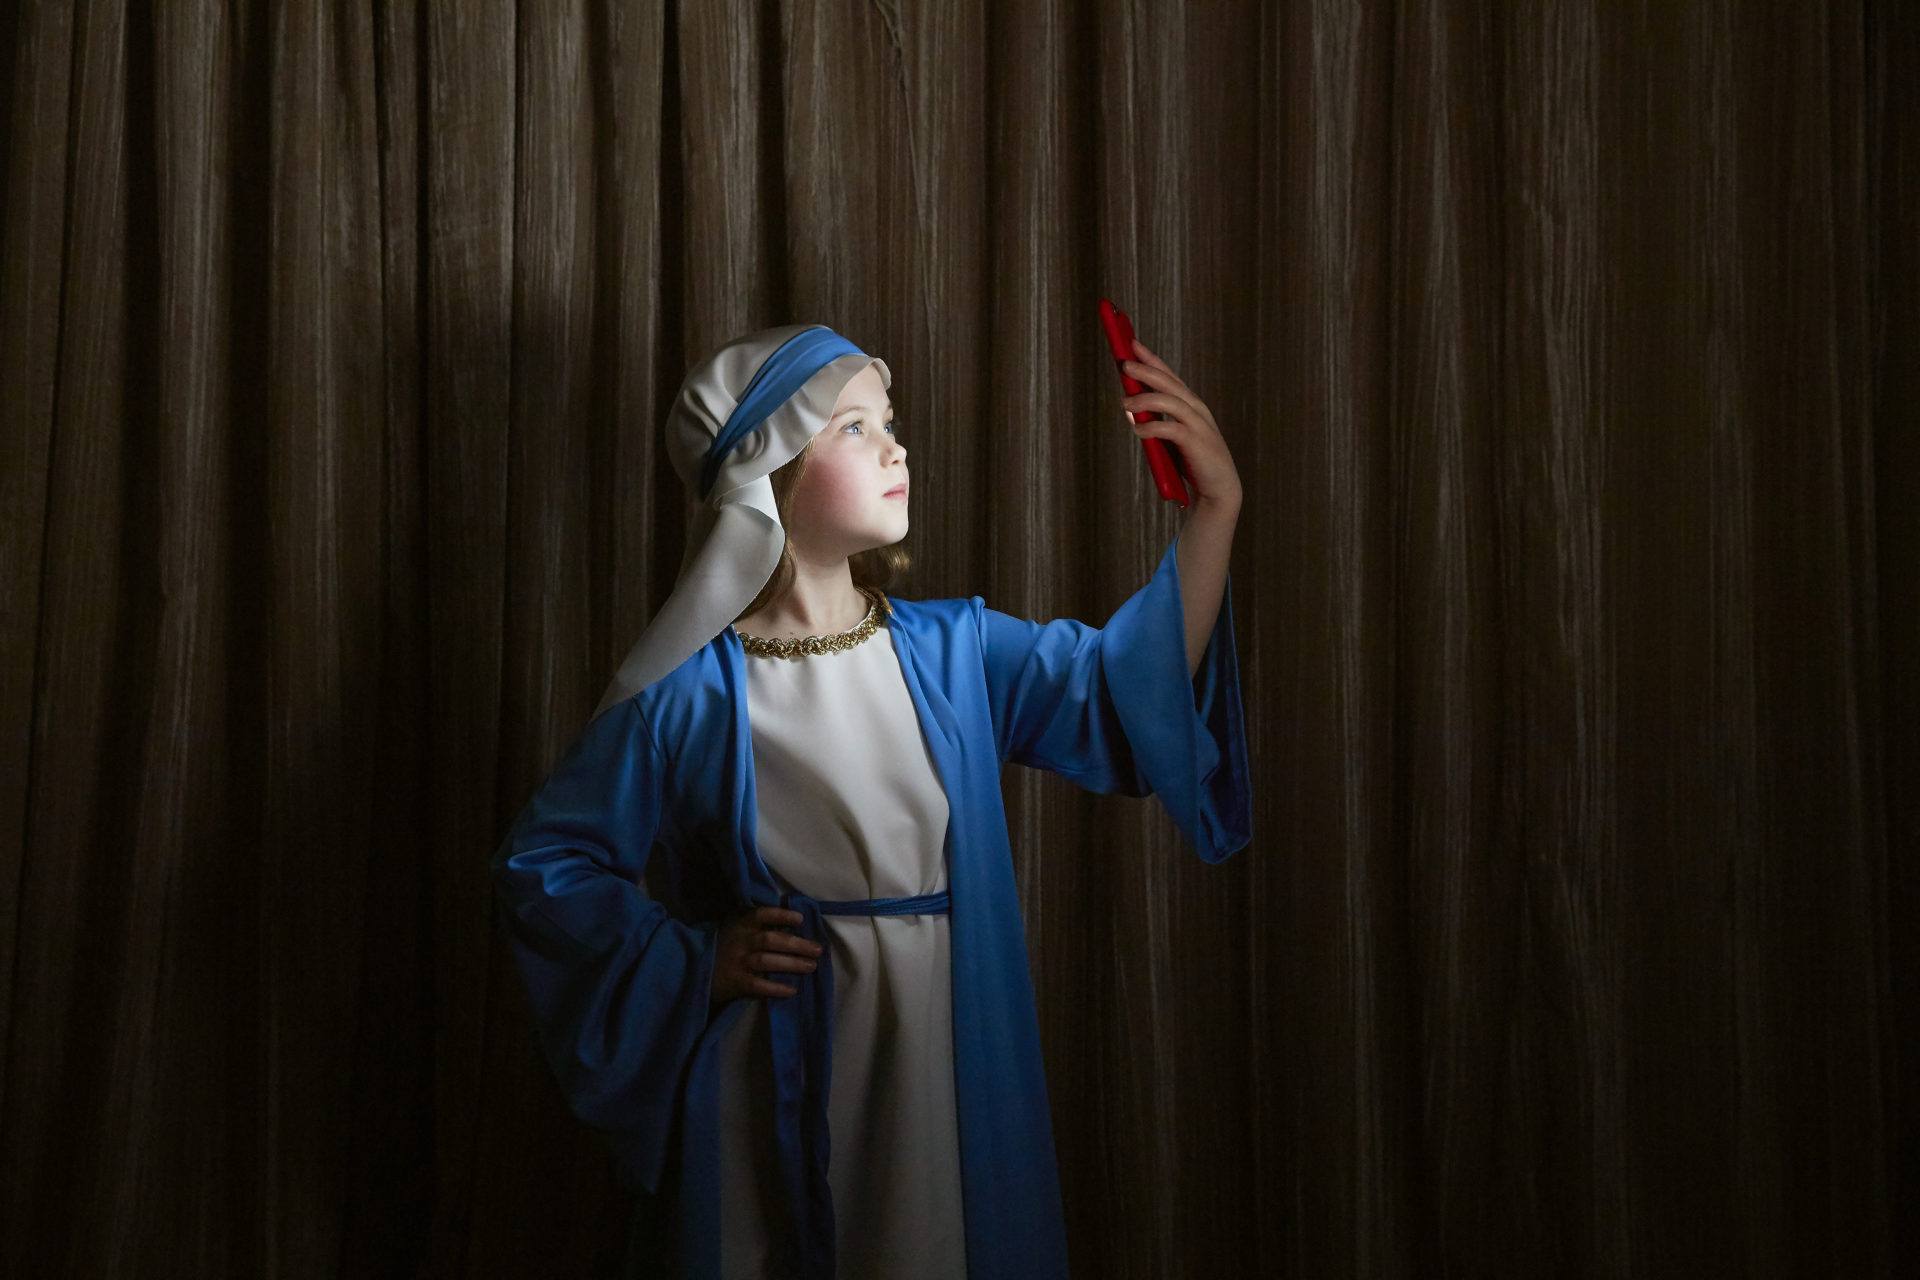 Shaw & Shaw Photography – Shaw and Shaw Photographers Manchester – advertising photographers – graphic image – Mary – Our Lady – girl taking selfie with iPhone dressed as Mary – Christmas play – Nativity play